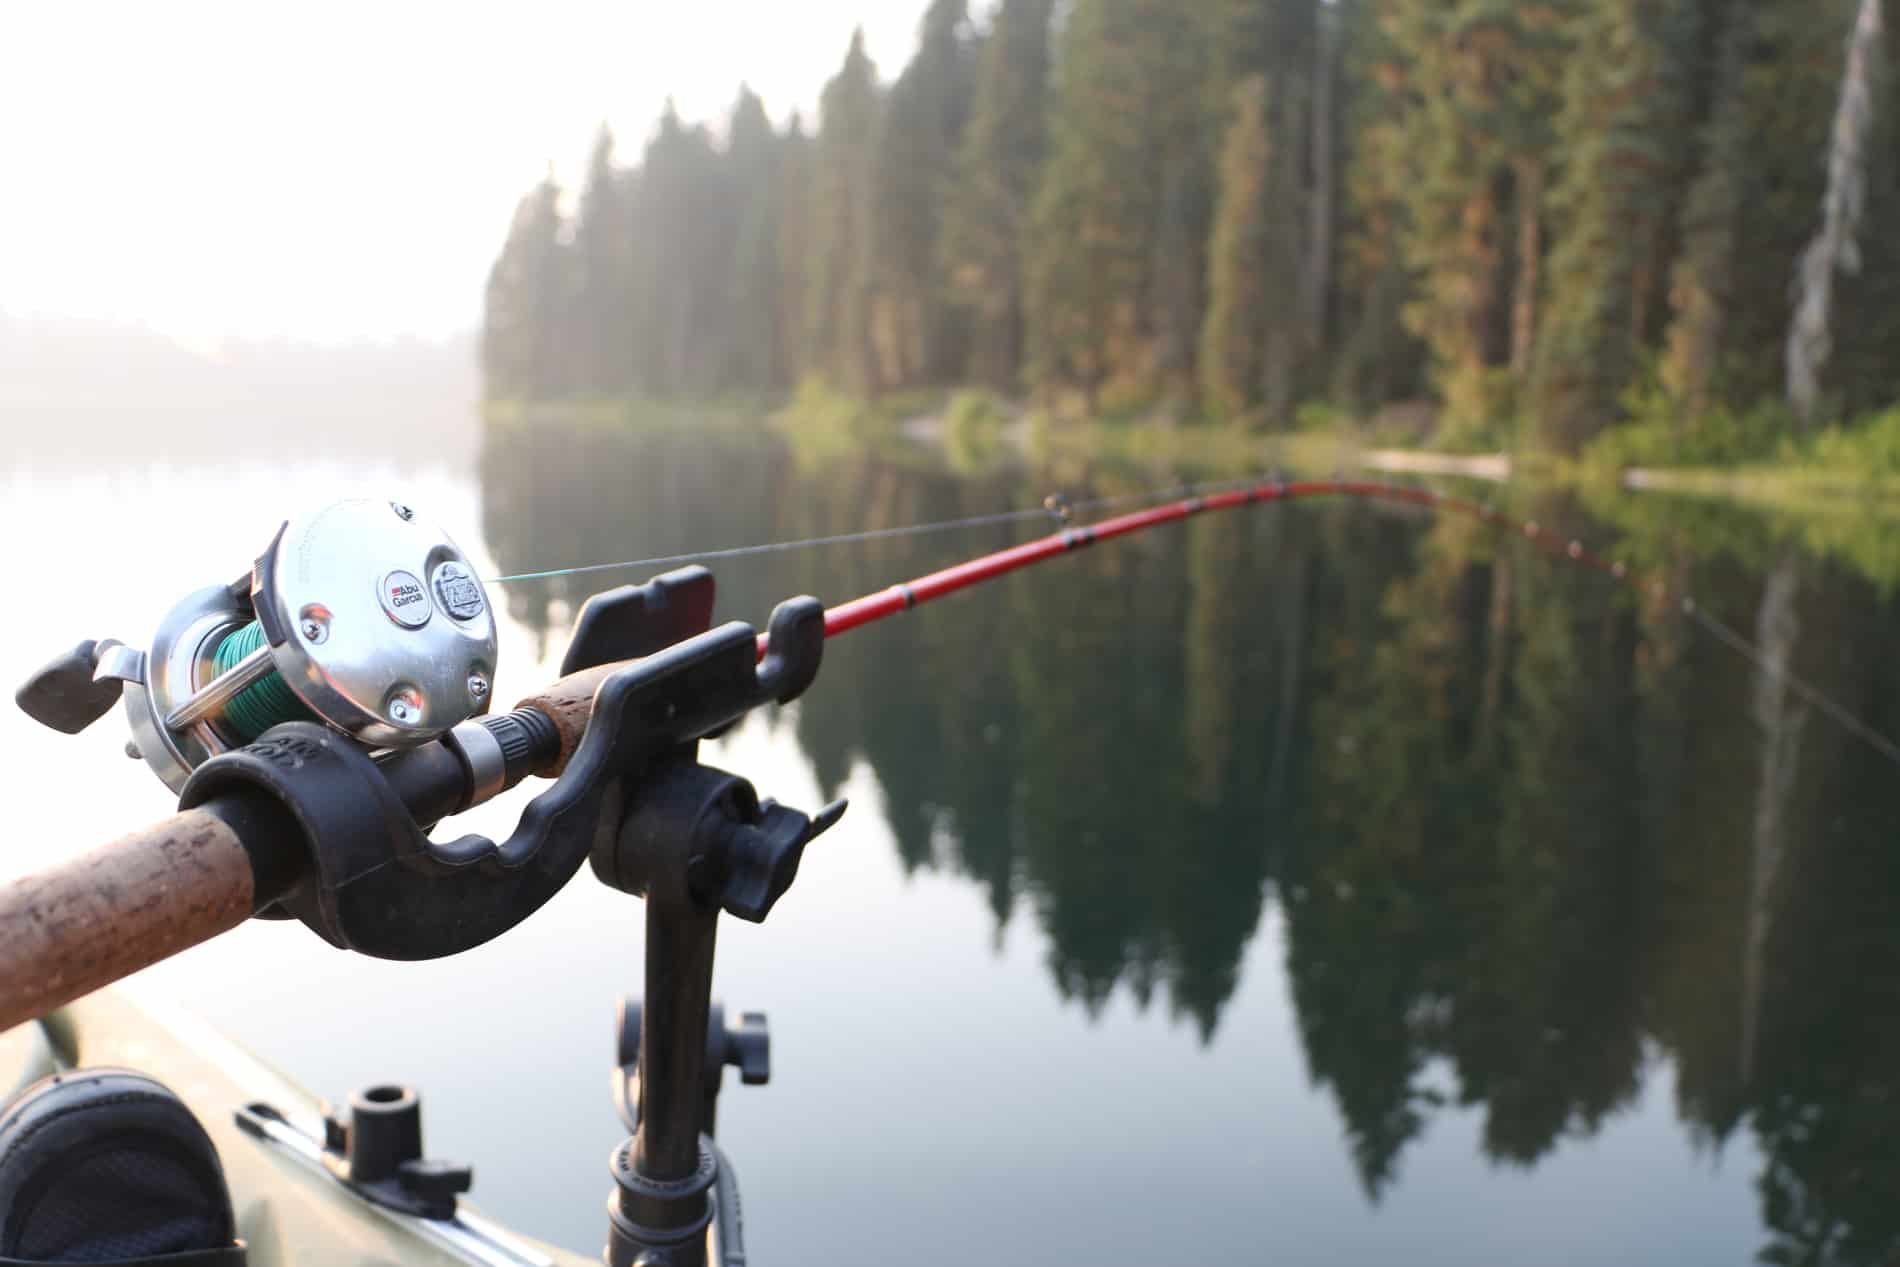 An adjustable rod holder elevates the rod away from the water. | Photo: Brad Hole